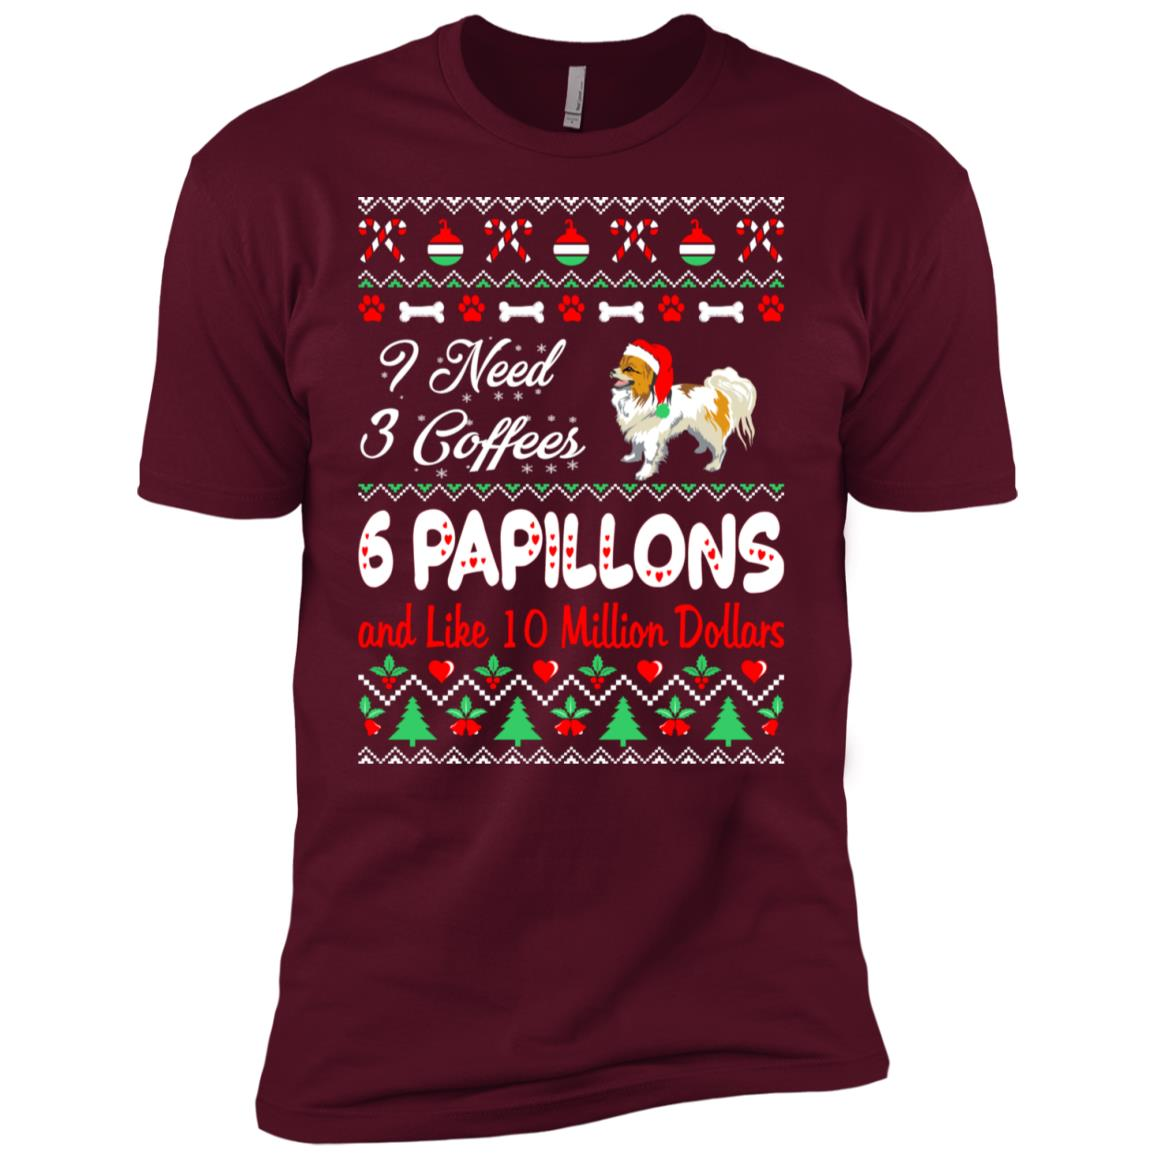 Need 3 Coffees 6 Papillons Christmas Ugly Sweater Men Short Sleeve T-Shirt